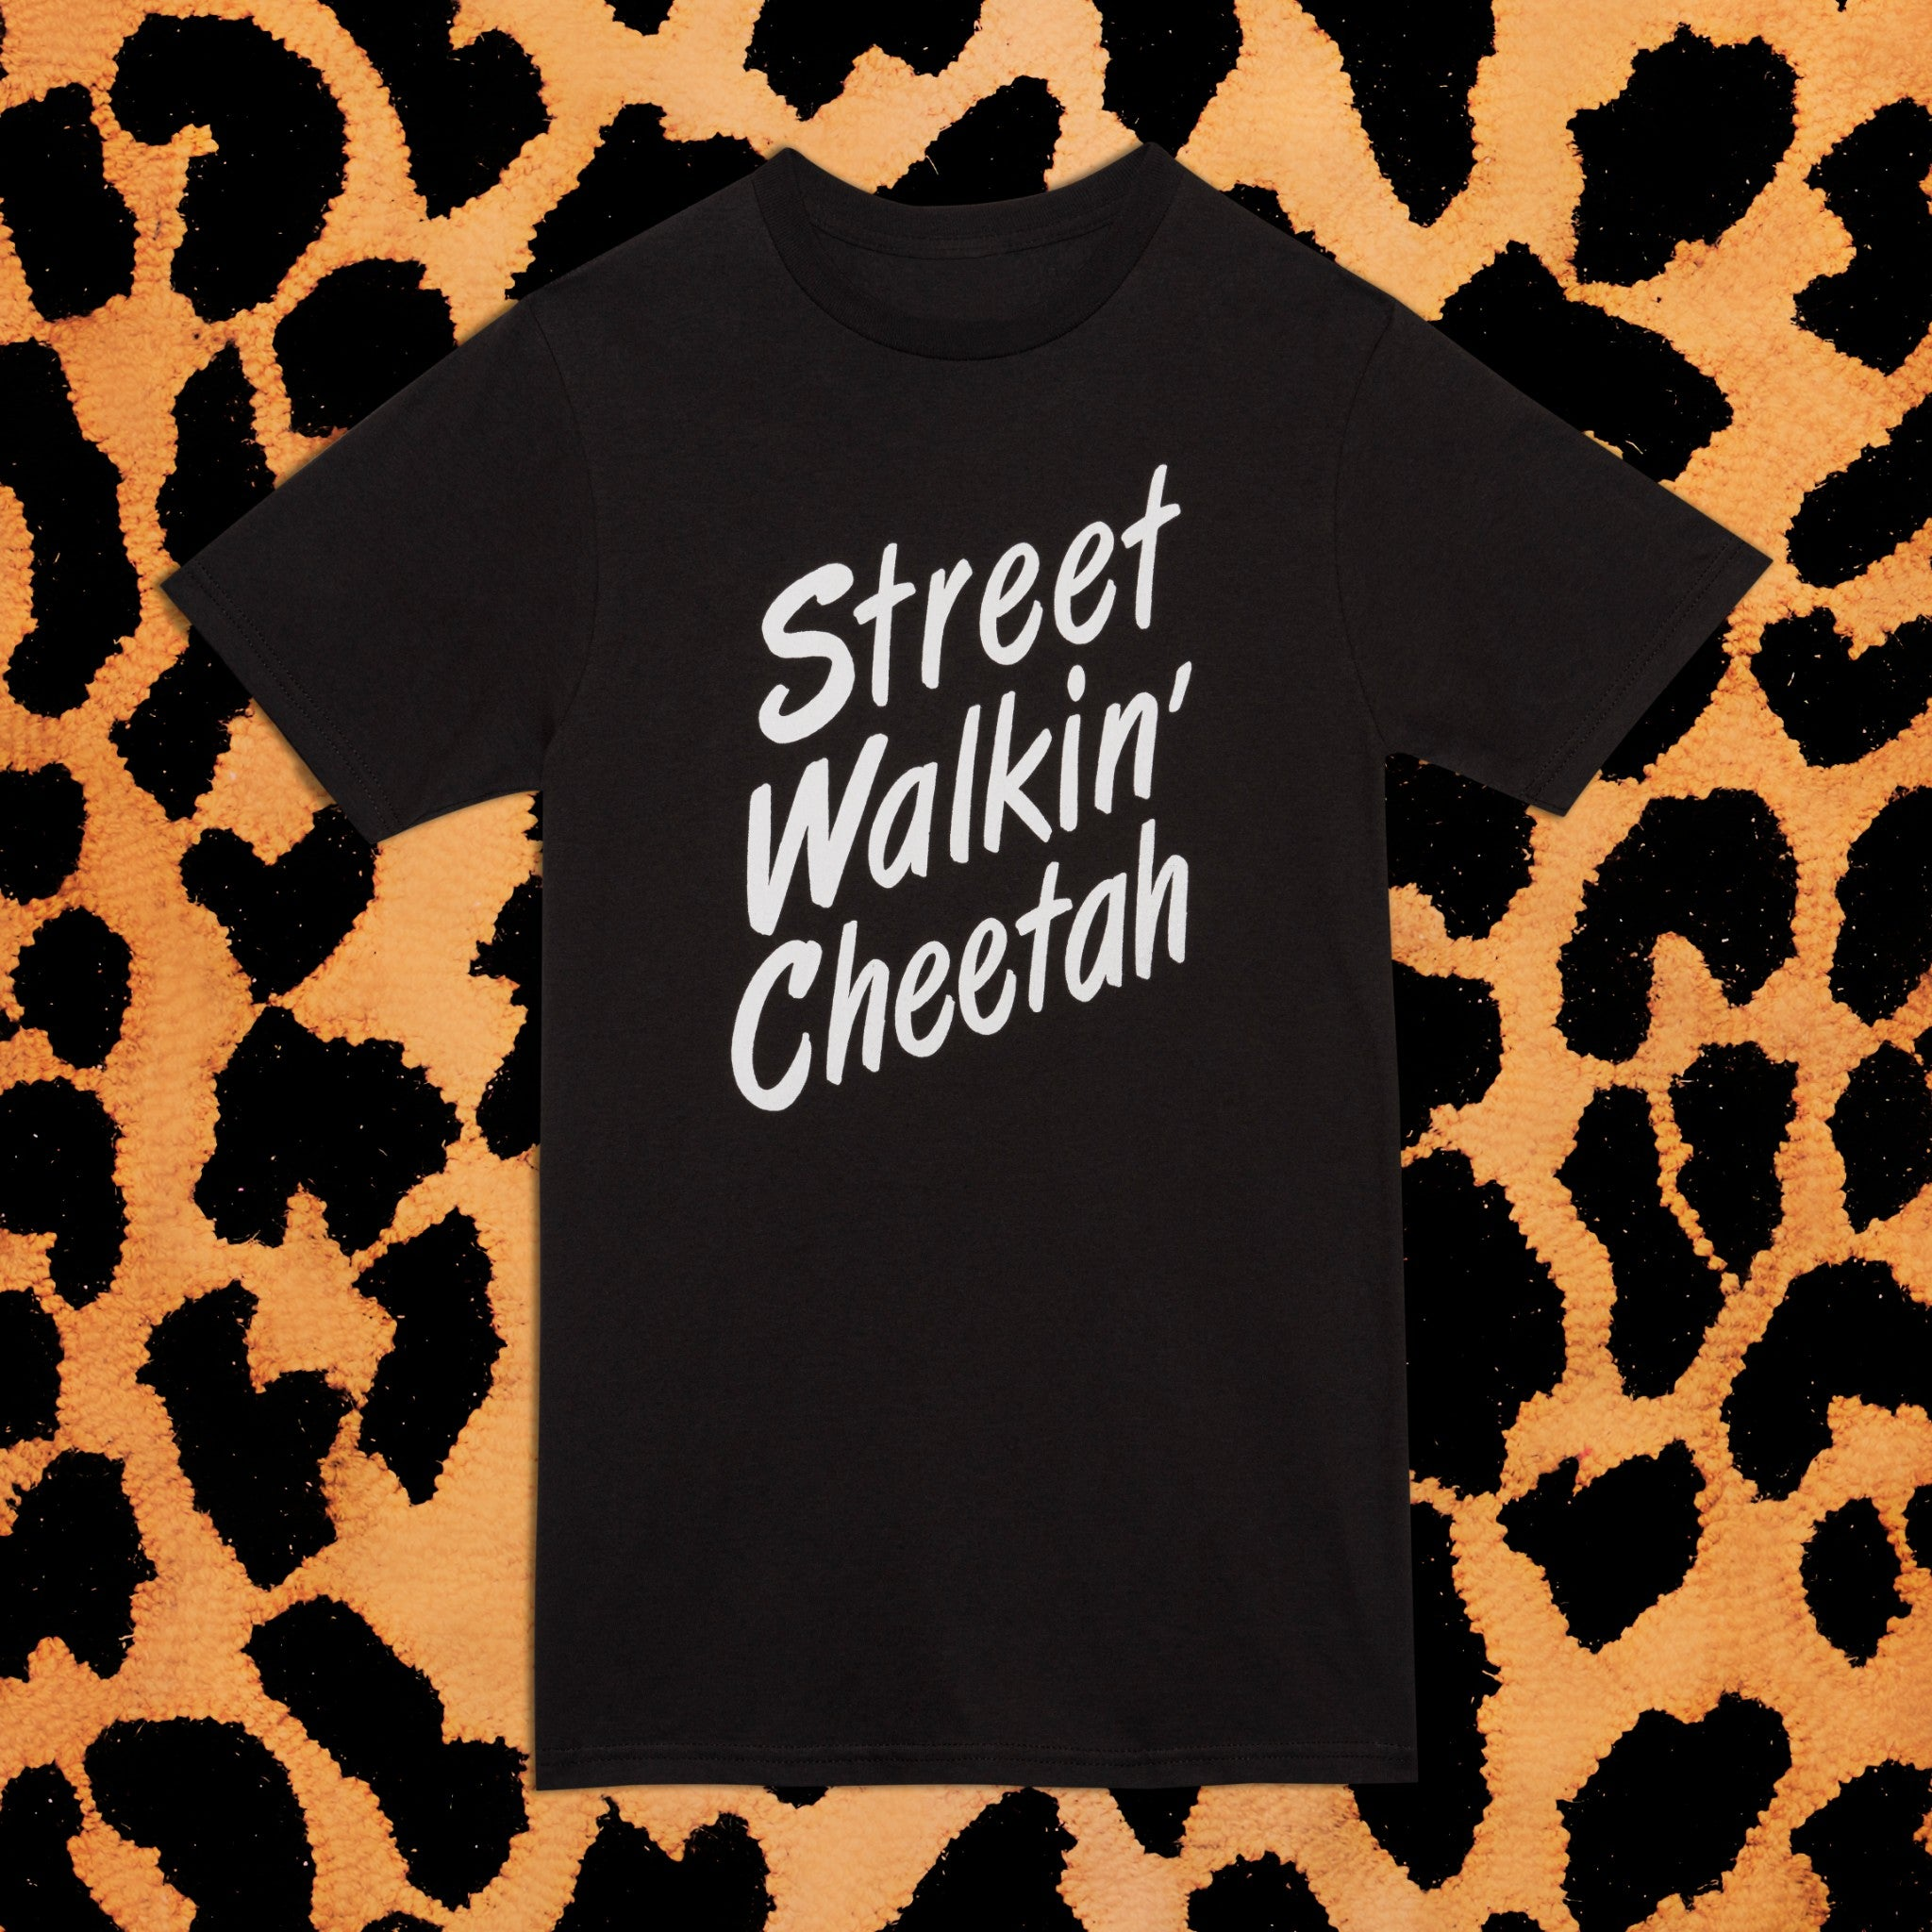 STREET WALKIN' CHEETAH T-SHIRT - I NEED MORE